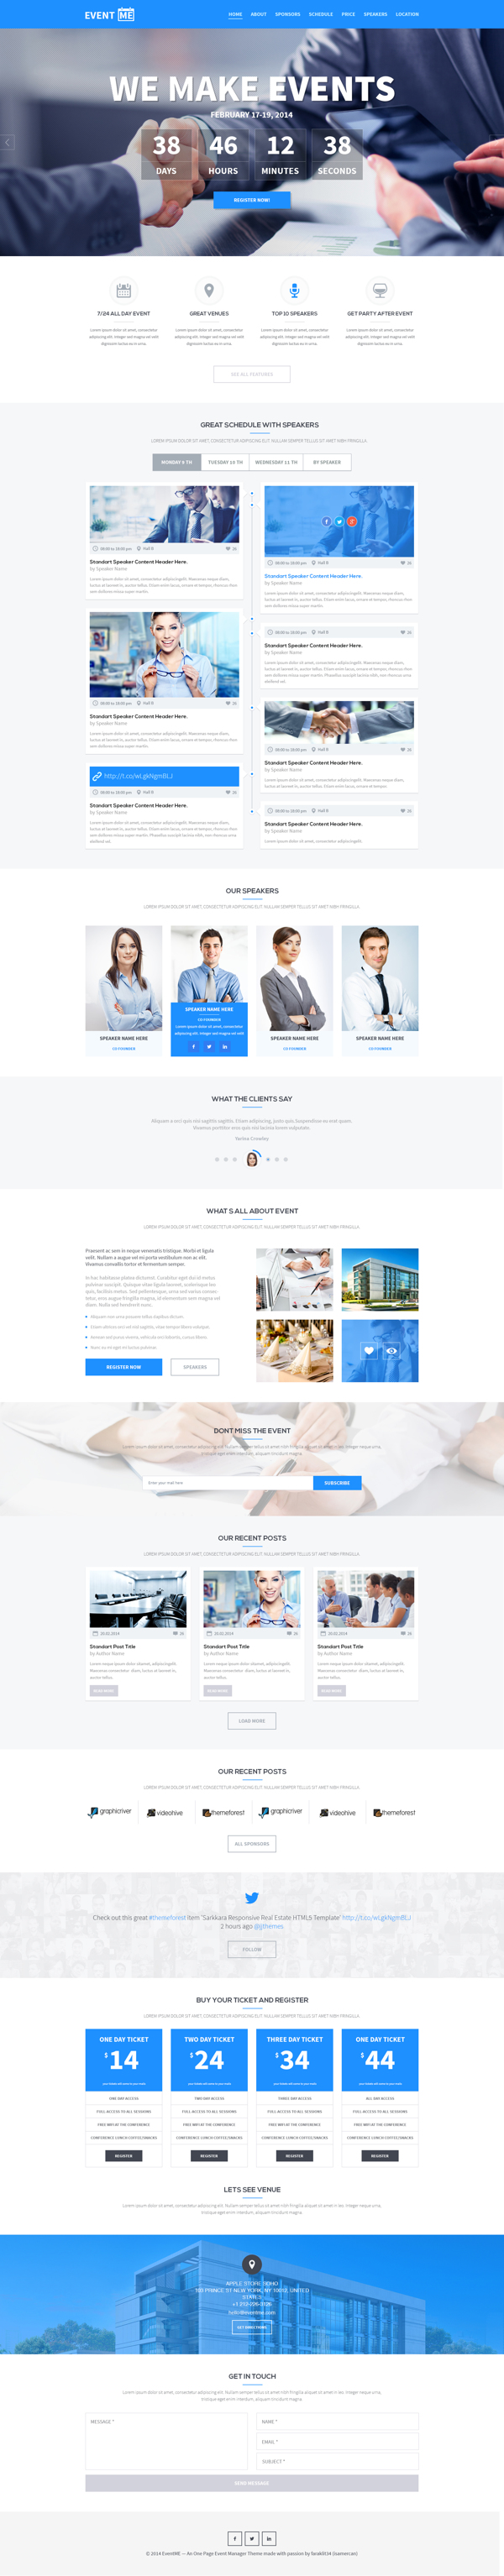 EventME - One Page Event Manager PSD Theme ( FREE PSD )